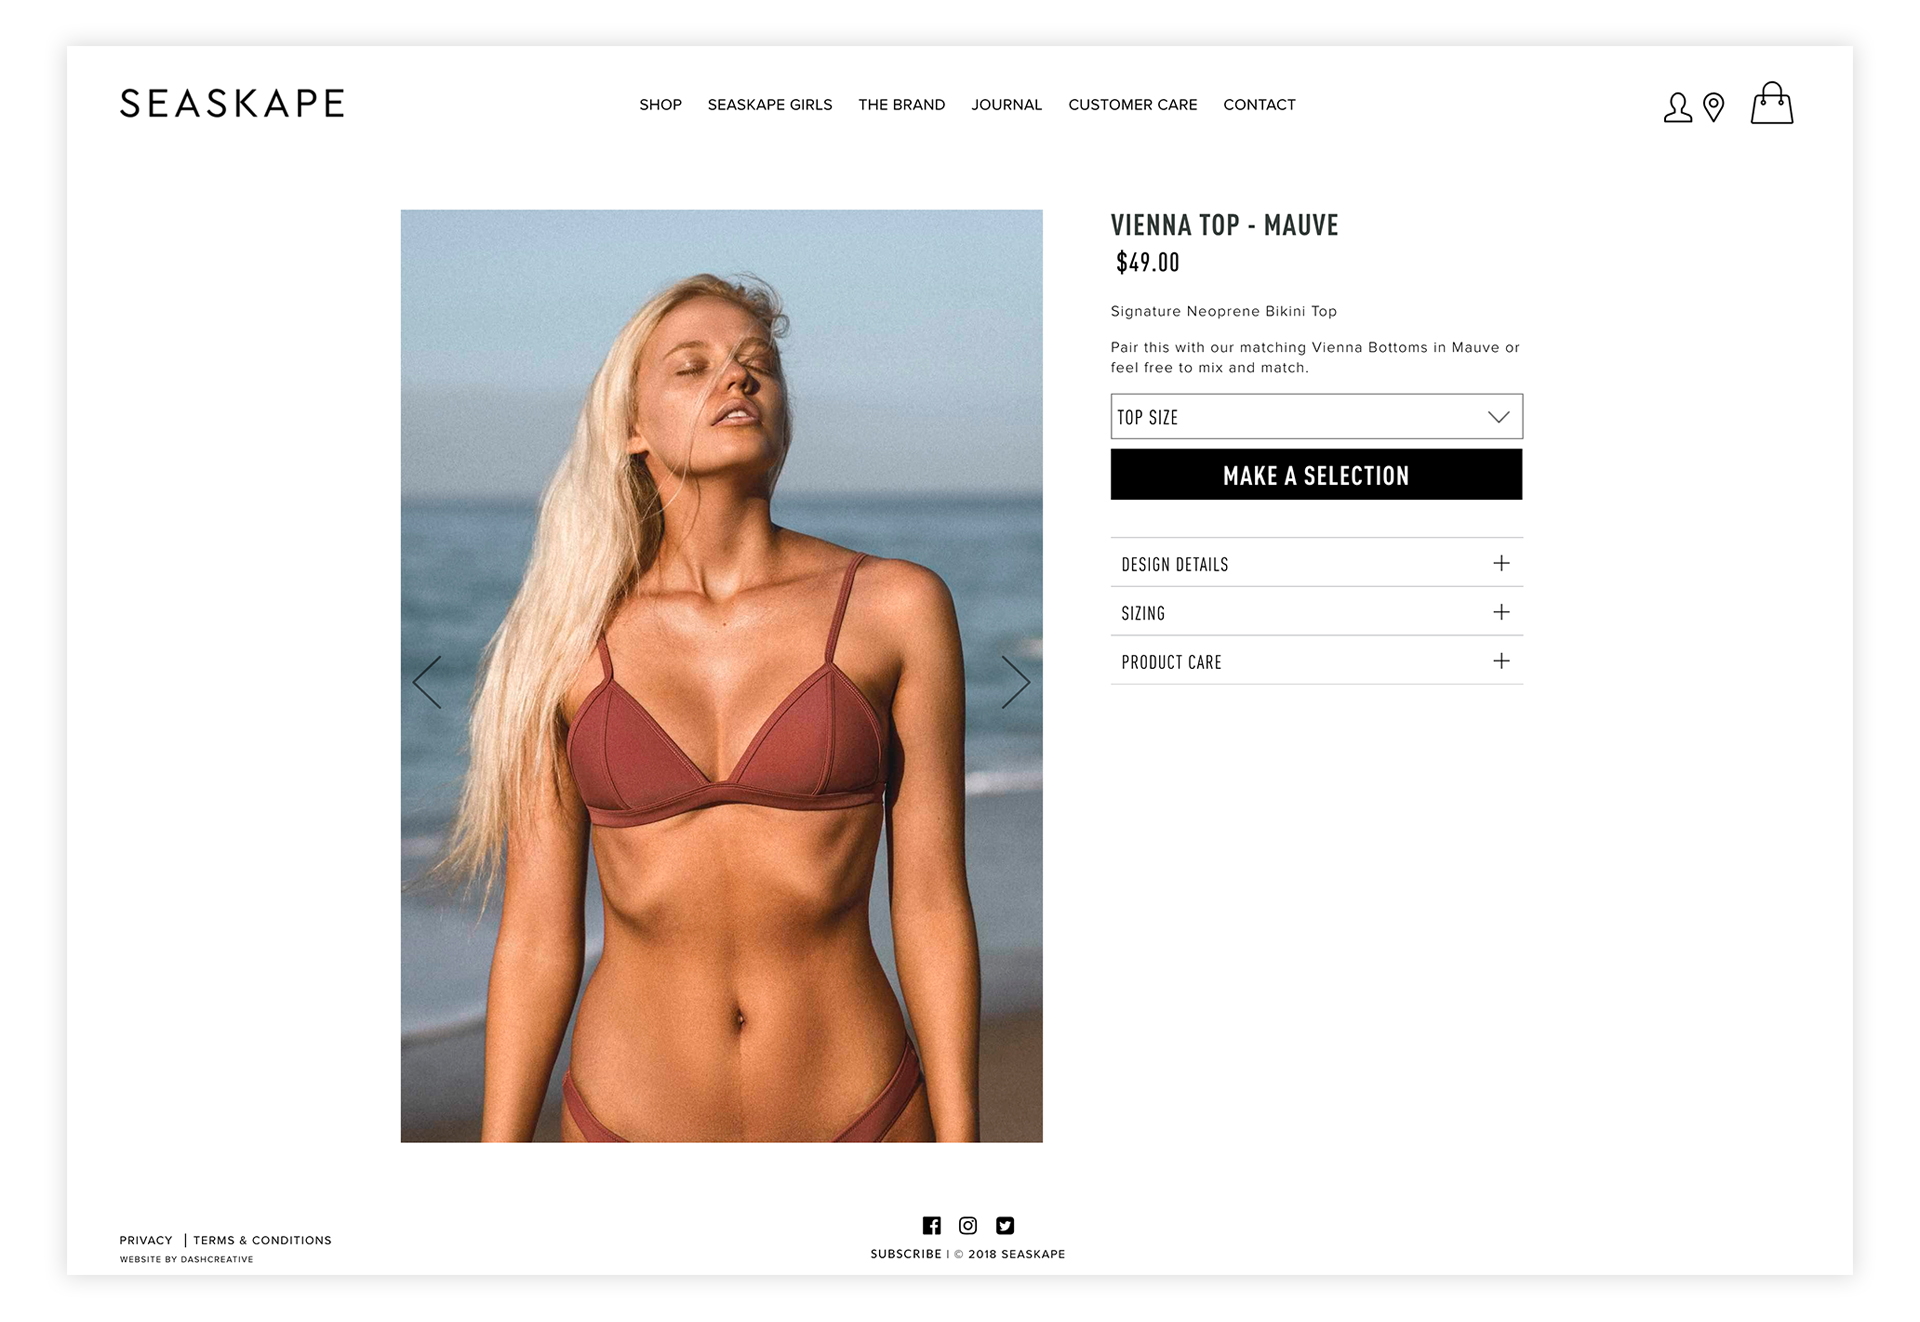 Seaskape Swimwear - Identity and Website Design